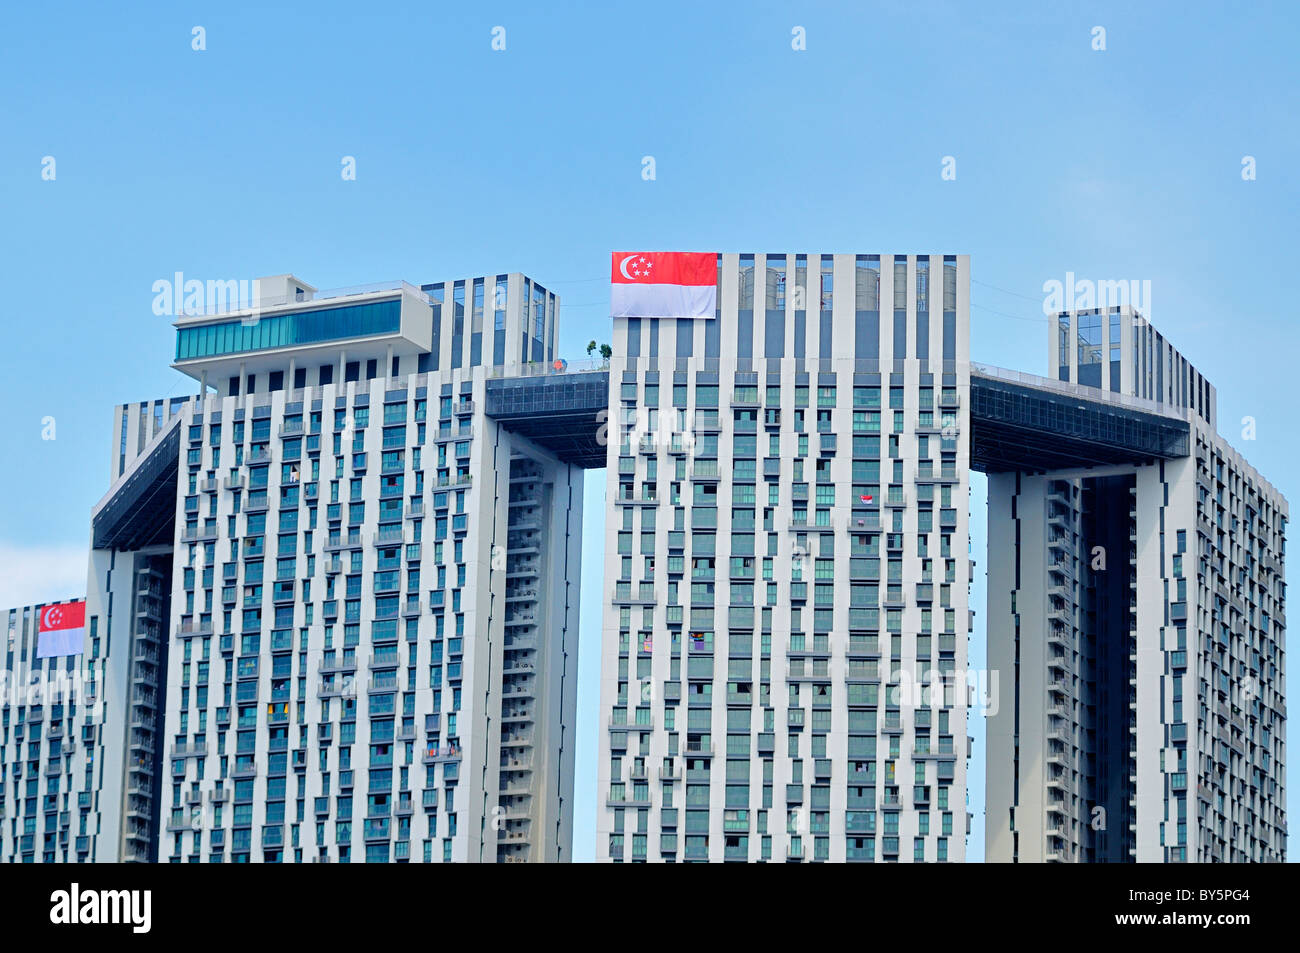 The Pinnacle at Duxton, the tallest public housing building in Singapore. - Stock Image